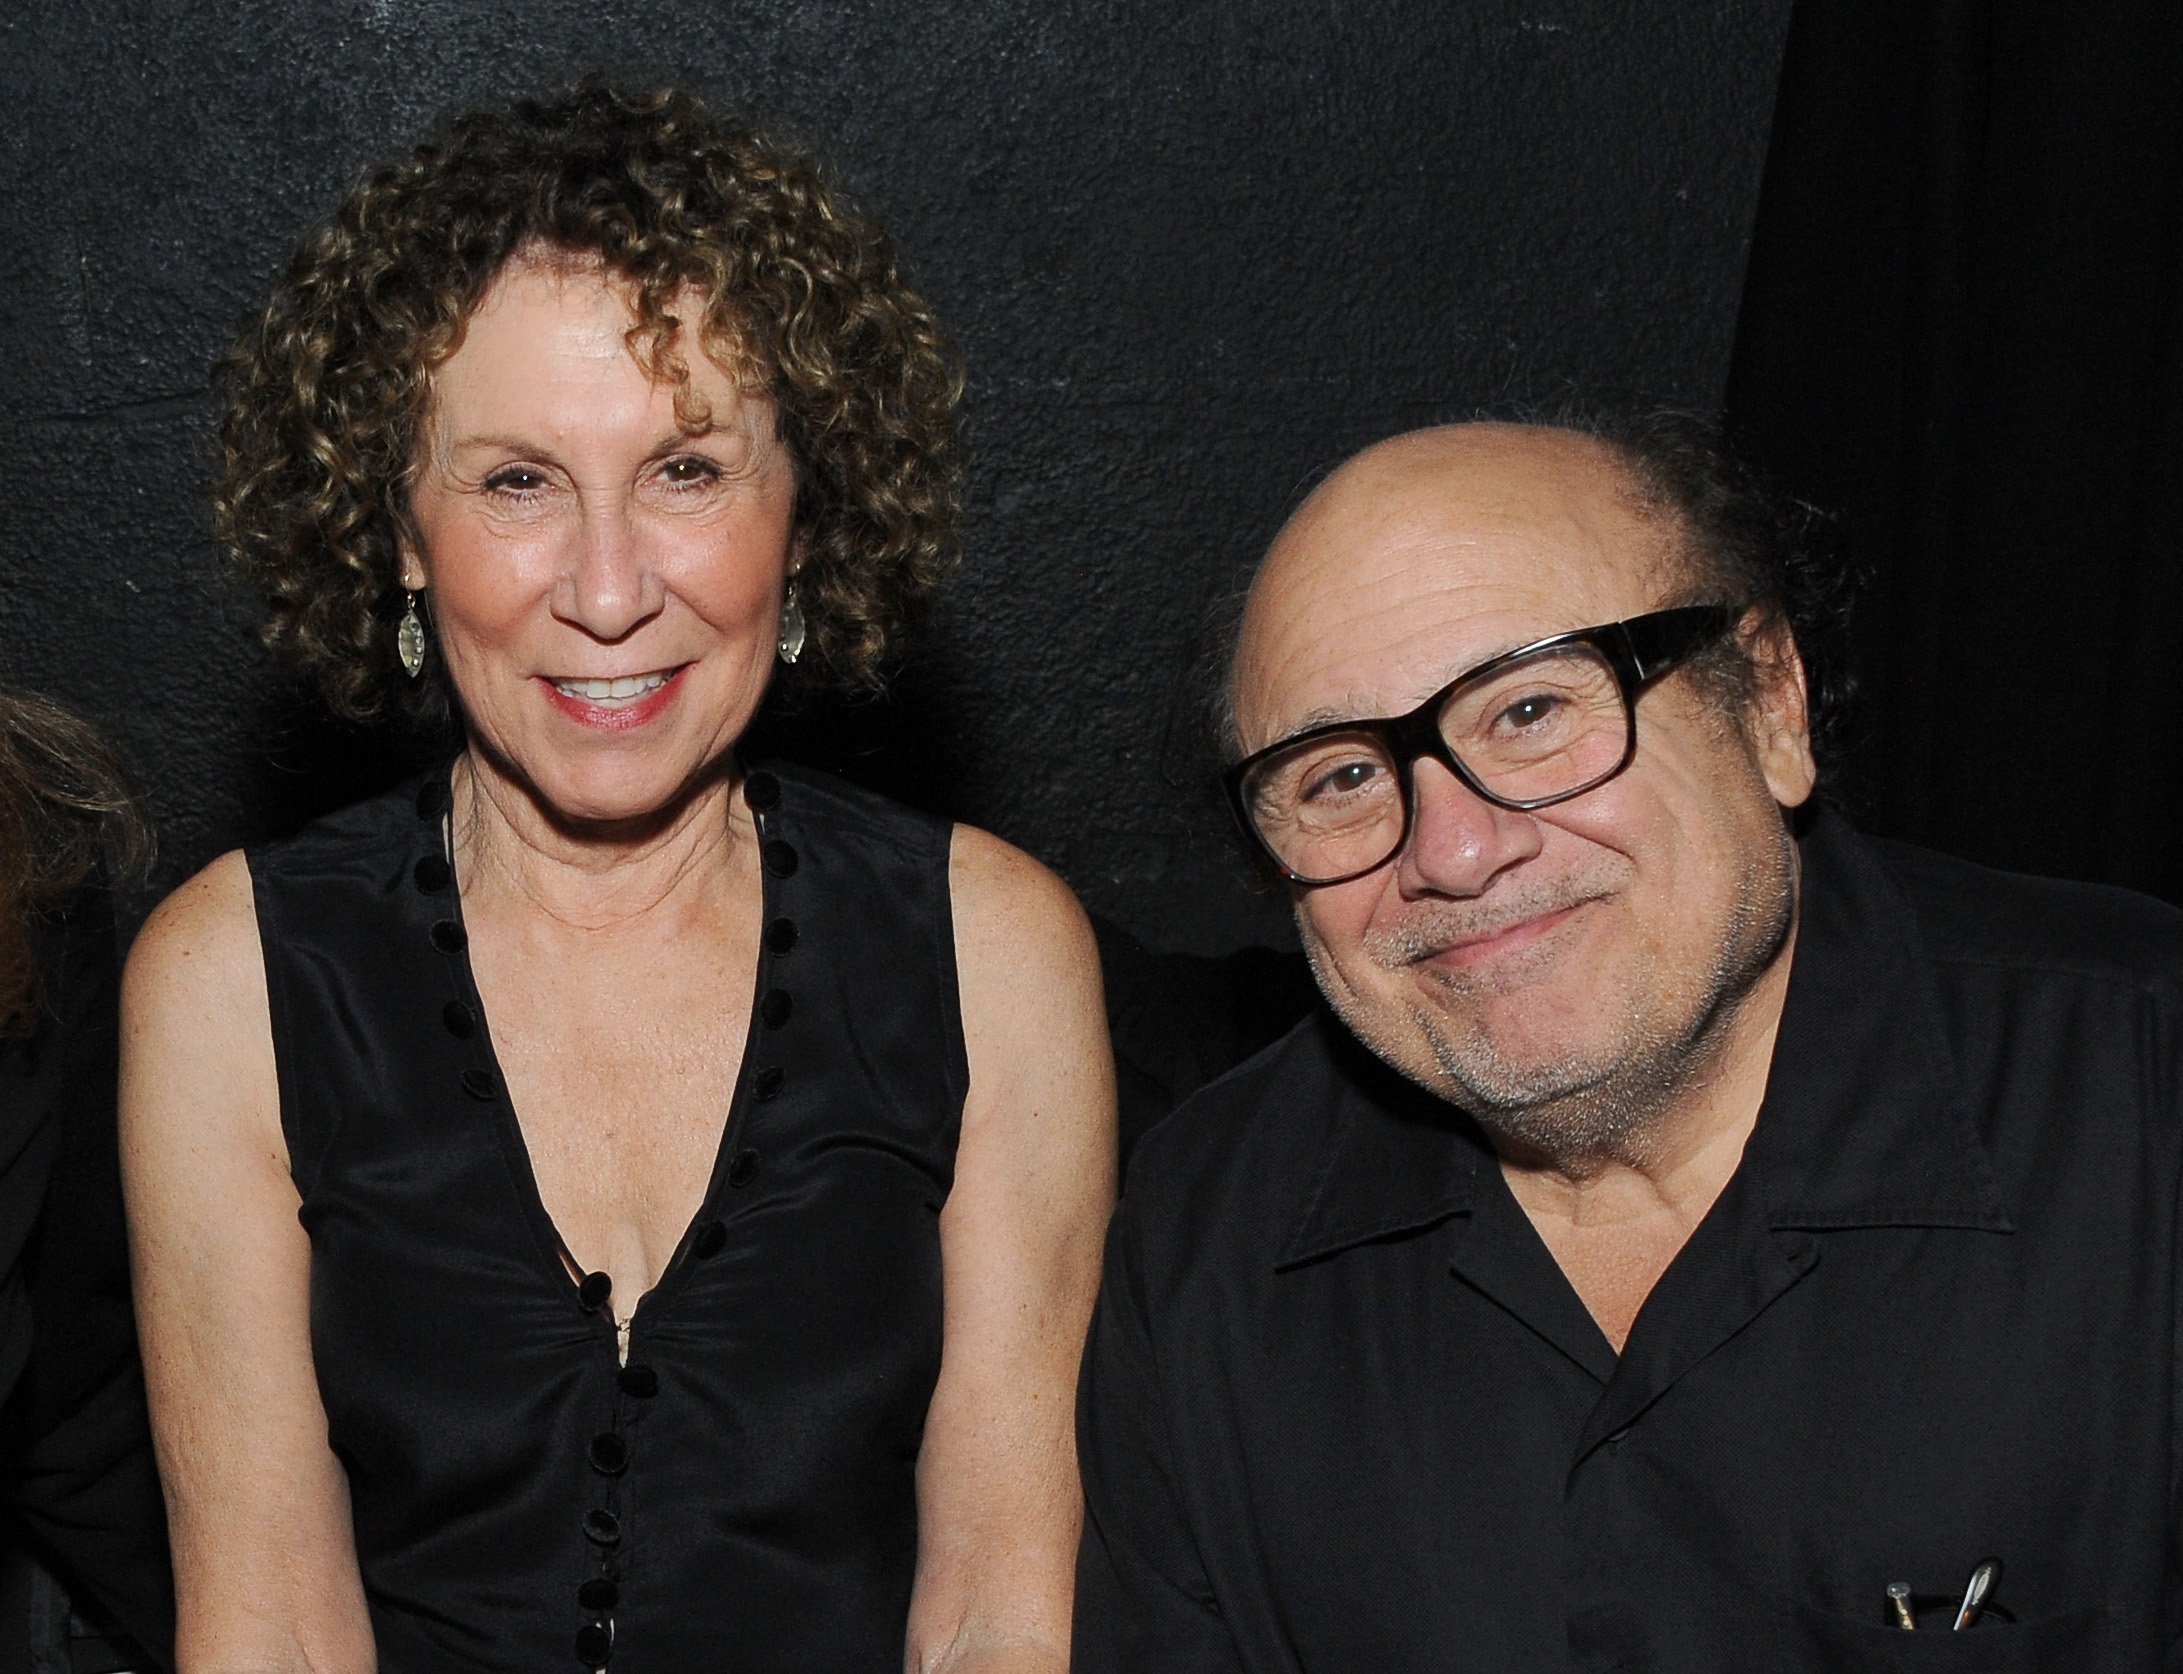 Rhea Perlman and Danny DeVito attend the International Myeloma Foundation 8th Annual Comedy Celebration on November 8, 2014, in Los Angeles, California. | Getty Images.